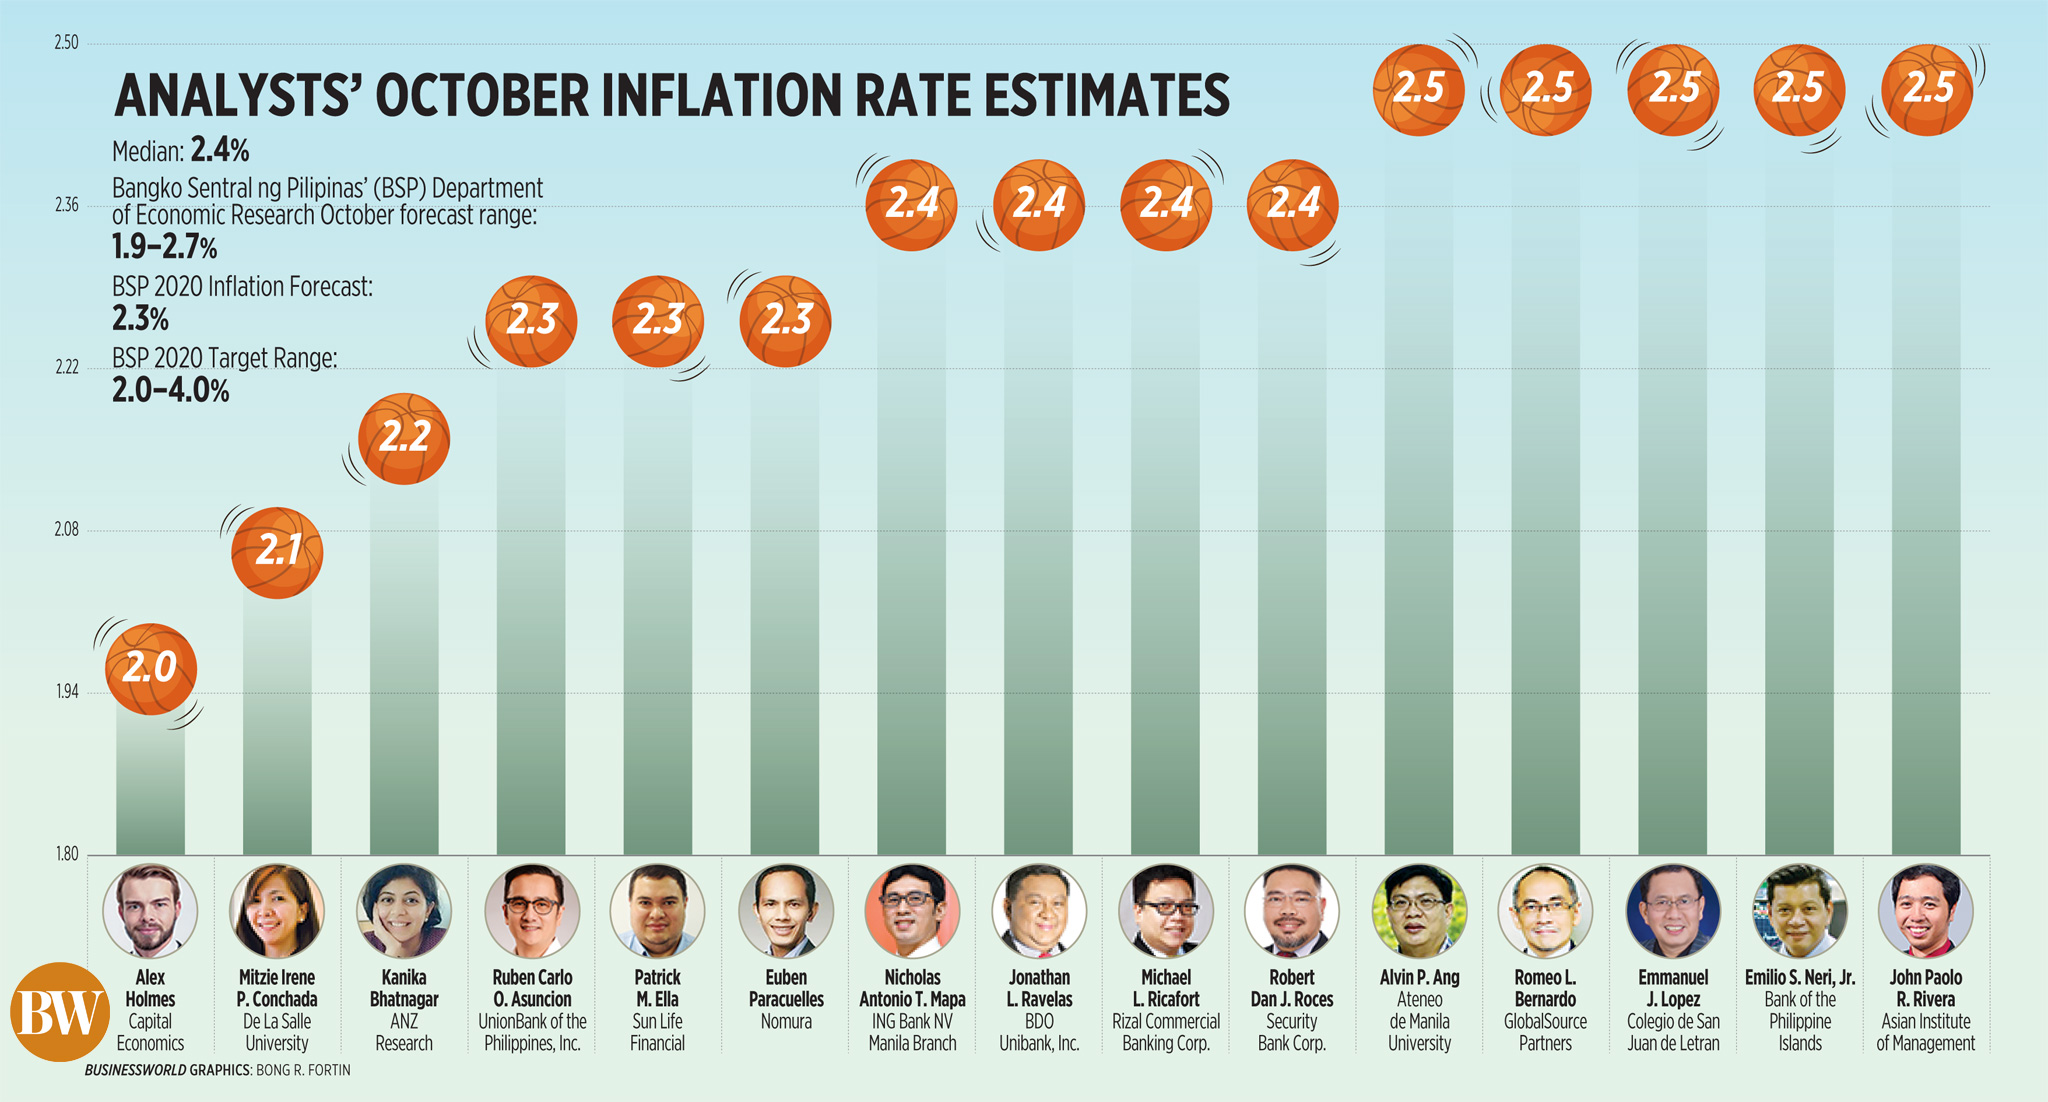 50554387897 832b221e02 o - Analysts' October inflation rate estimates (2020)